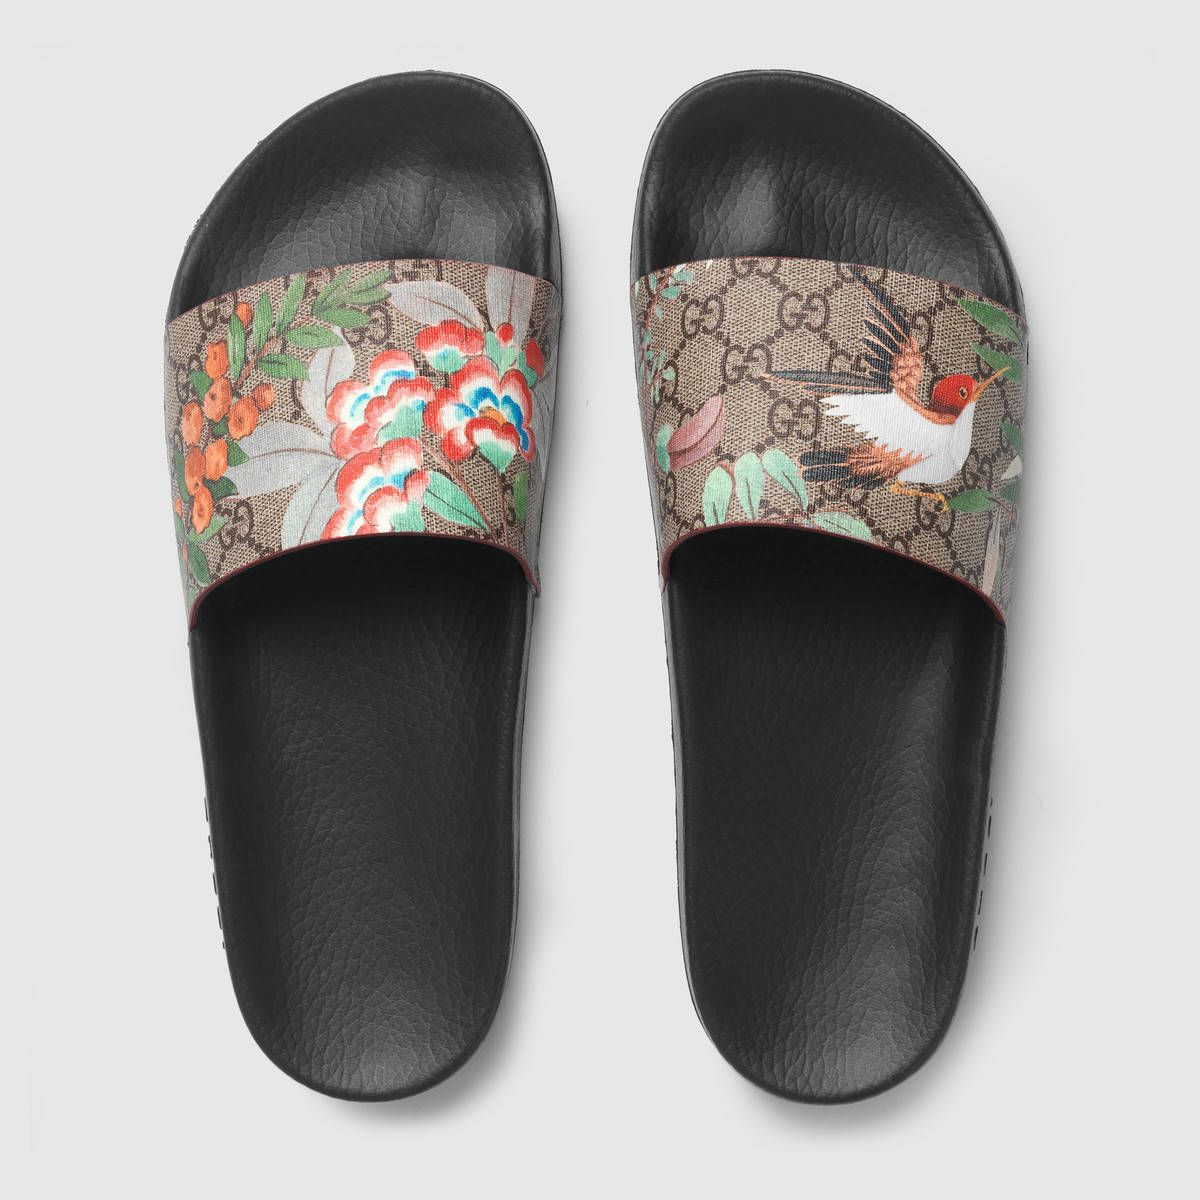 0efe83e35 Men's Gucci Tian slide sandal* | Mens | Shoes, Gucci shoes, Sandals